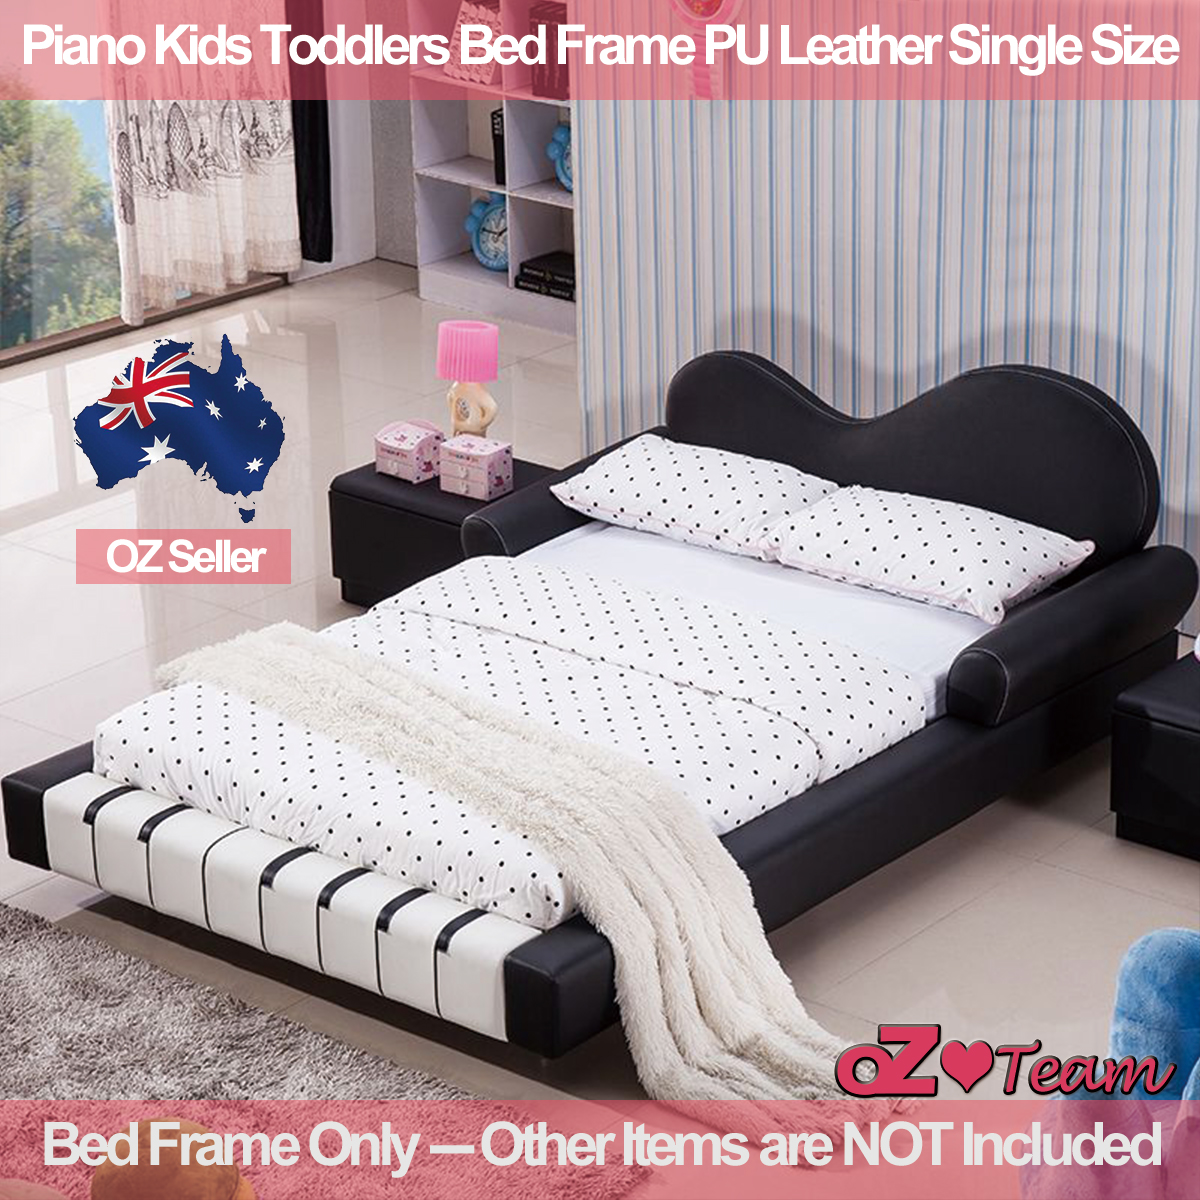 Piano Kids Toddlers Bed Frame PU Leather Girls Boys Children Single ...